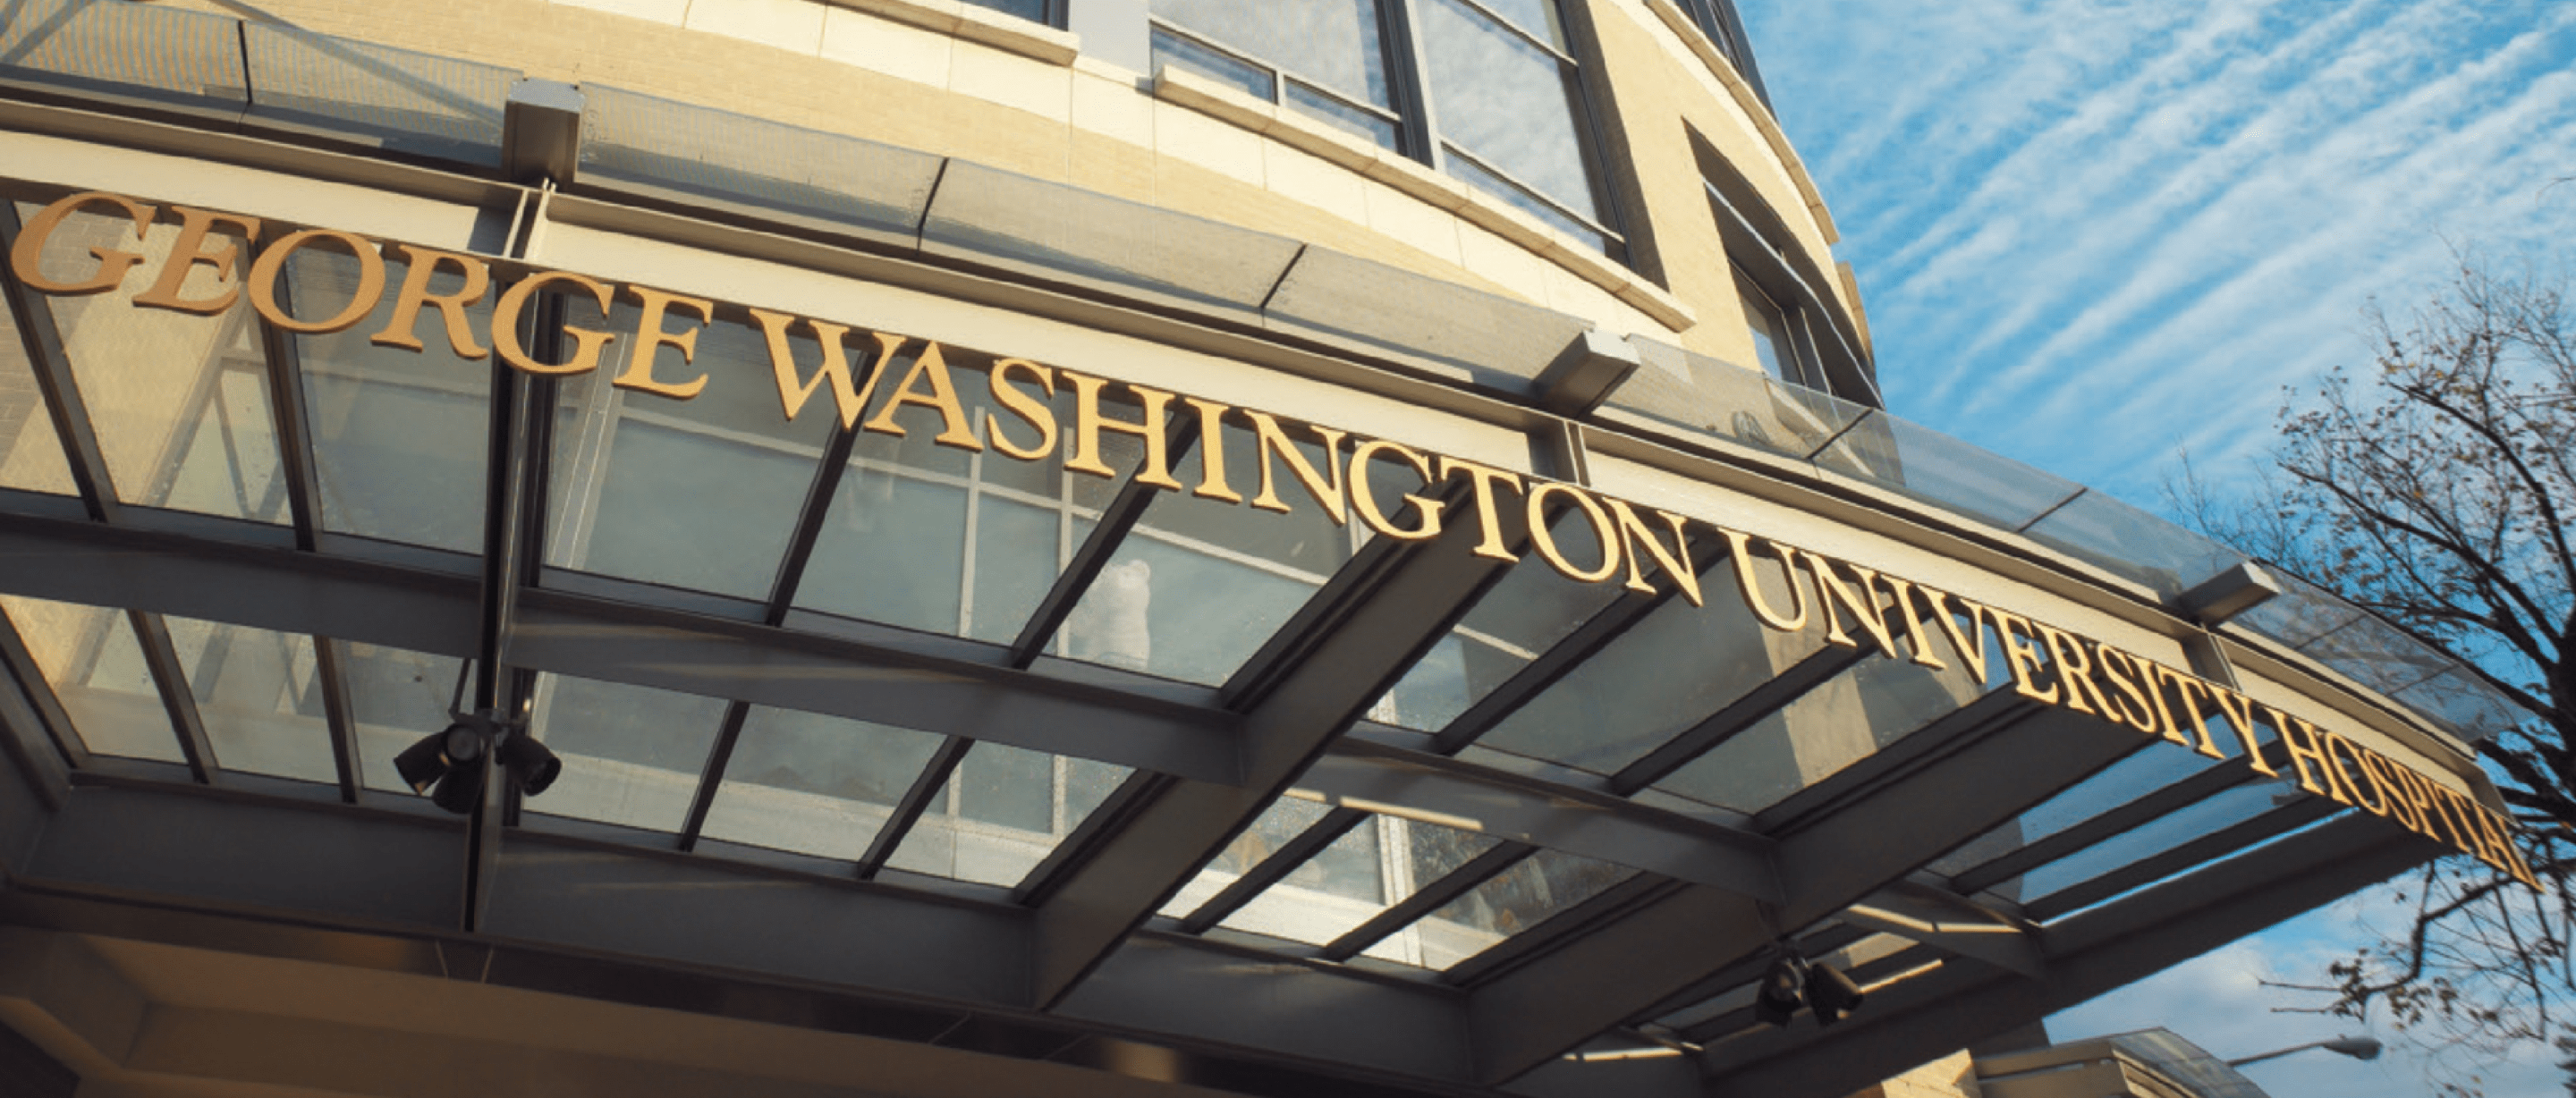 The George Washington University Hospital Content Job Search